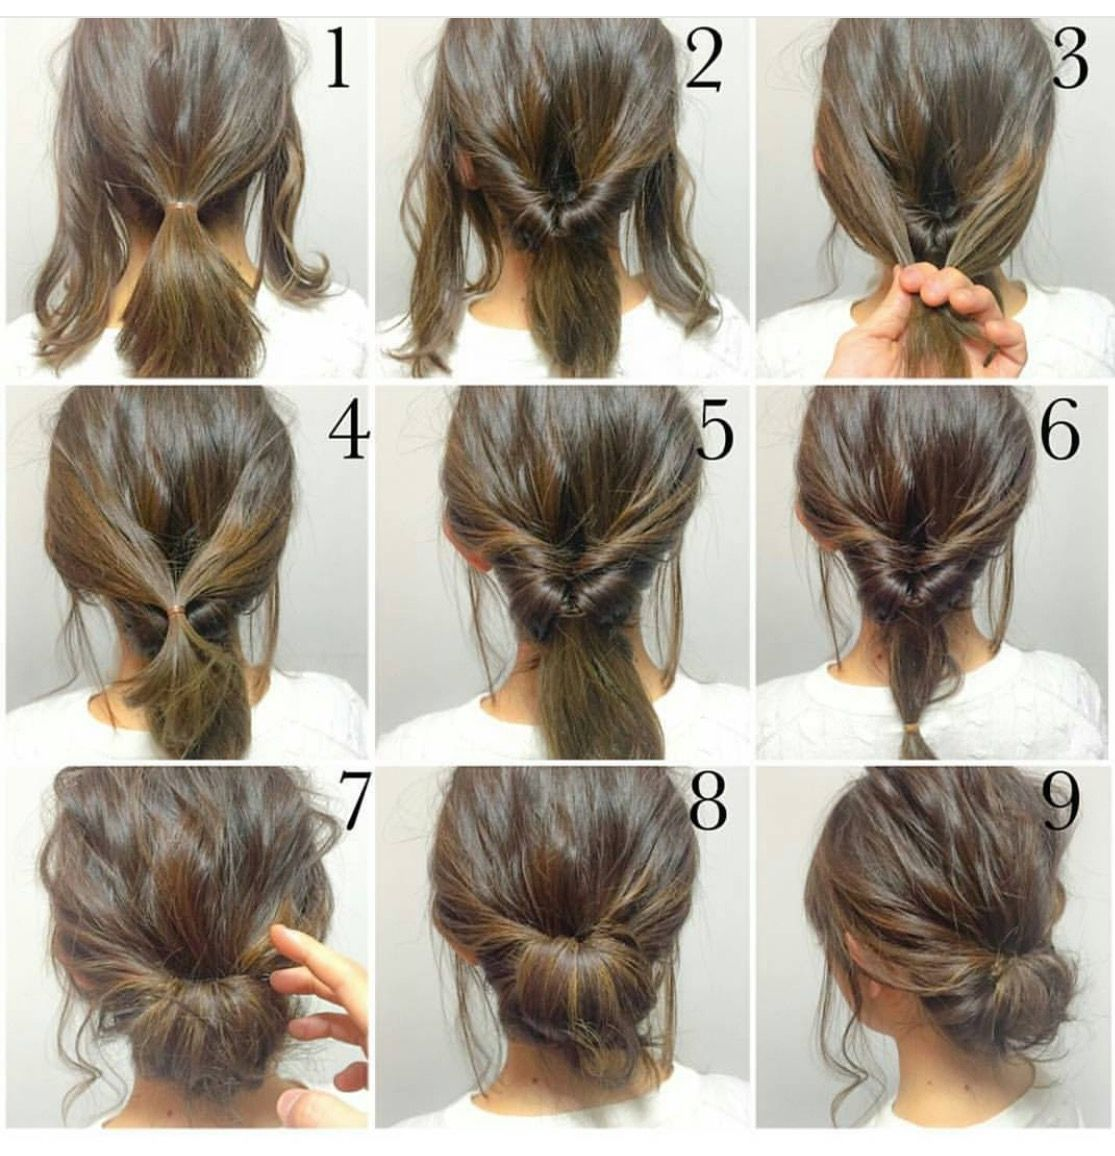 4 messy updos for long hair | hairz | pinterest | updos, hair style